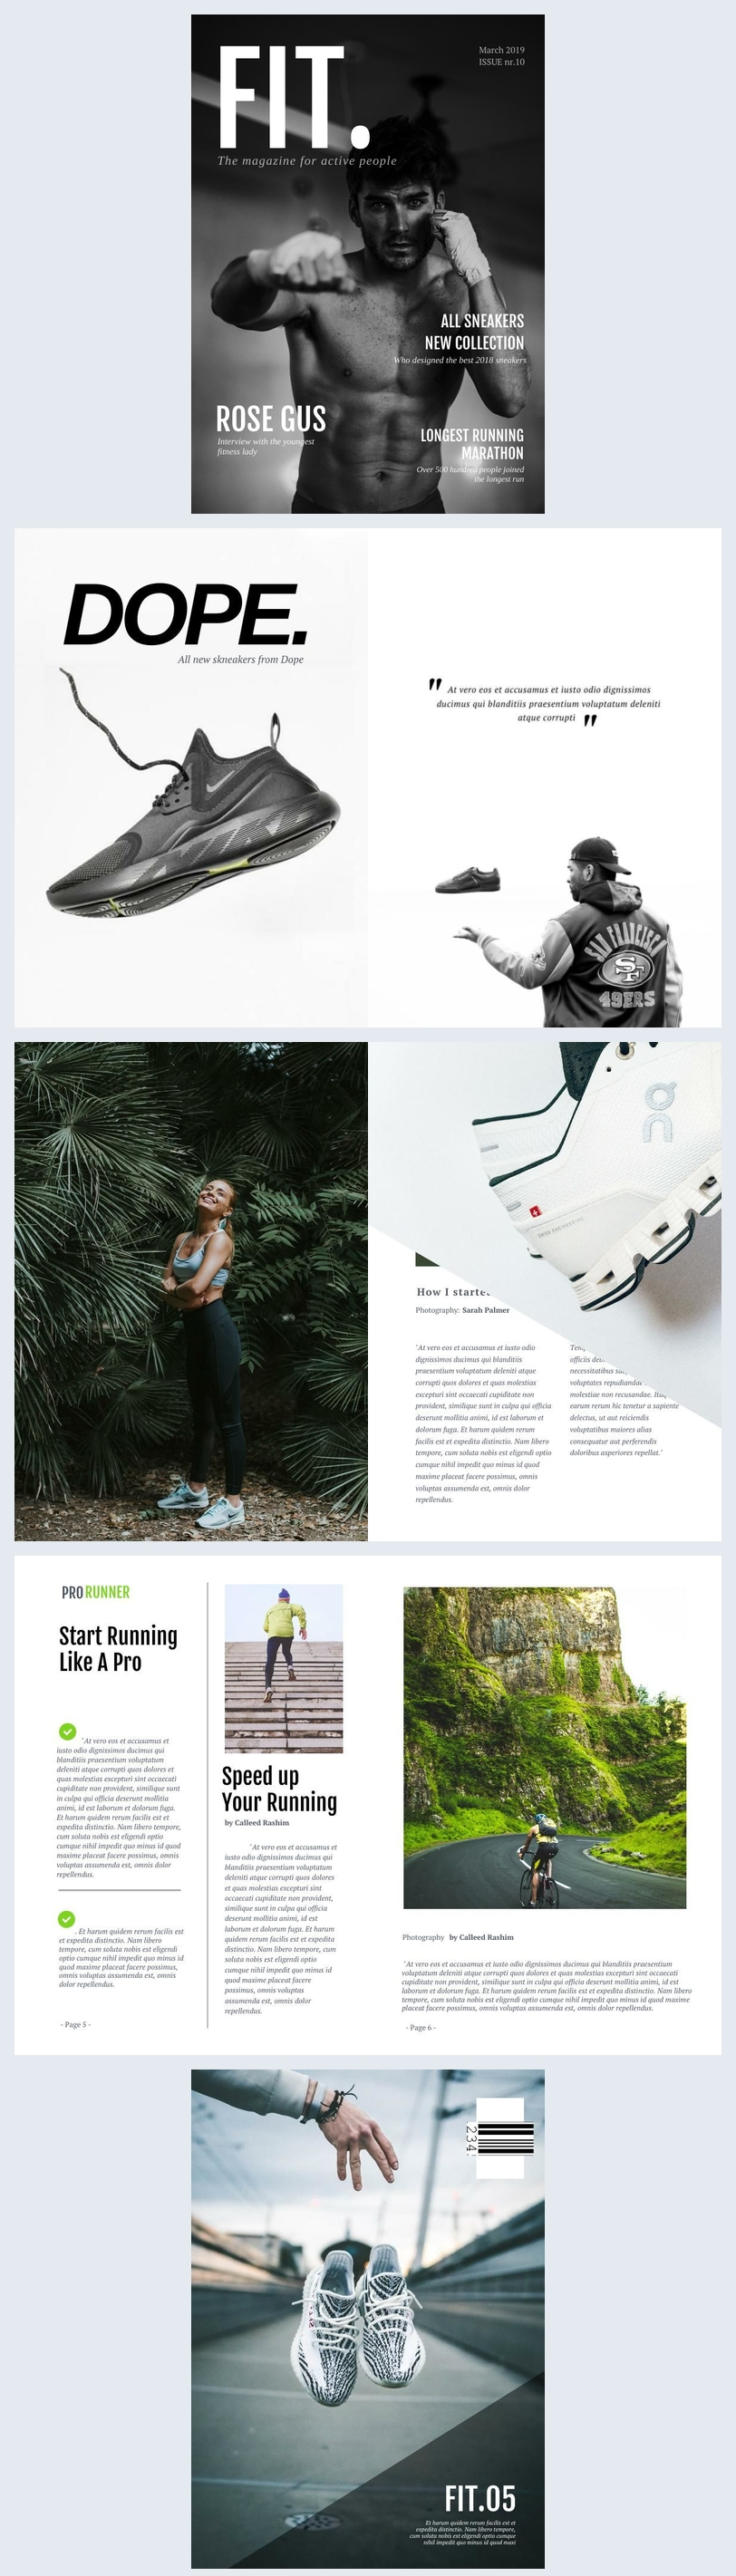 Sports Clothing Catalog Template